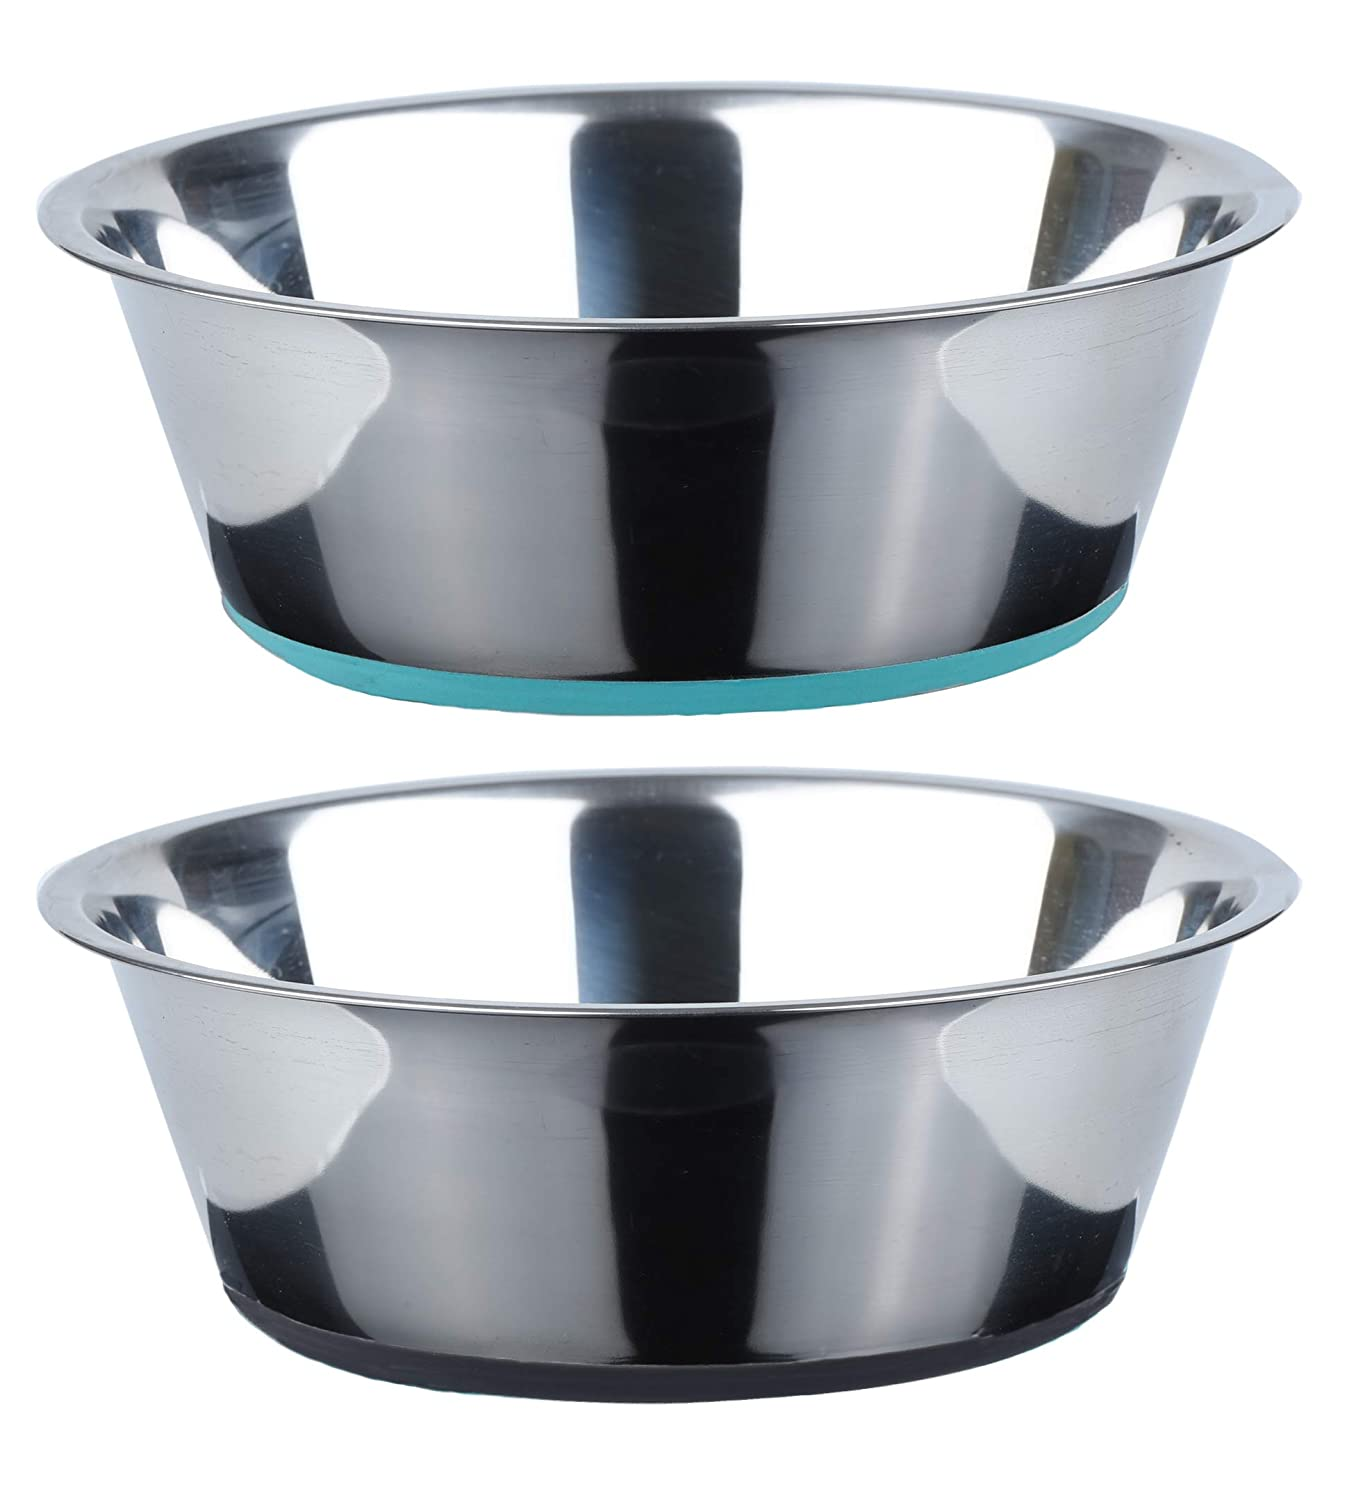 Peggy 11 No Spill Non-Skid Stainless Steel Deep Dog Bowls